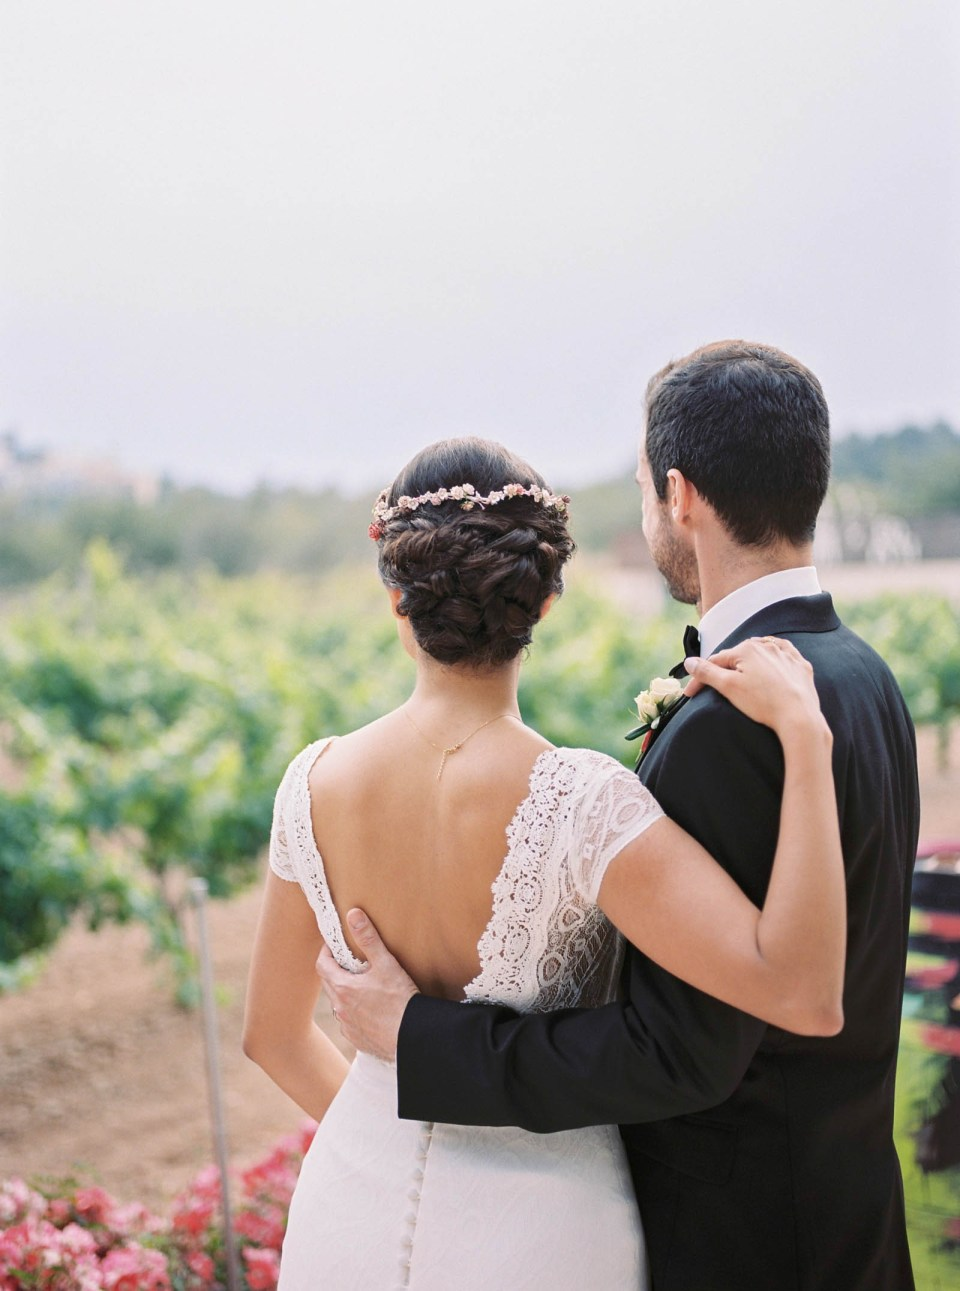 Spanish Vineyard Wedding | Costa Brava | Married Morenos